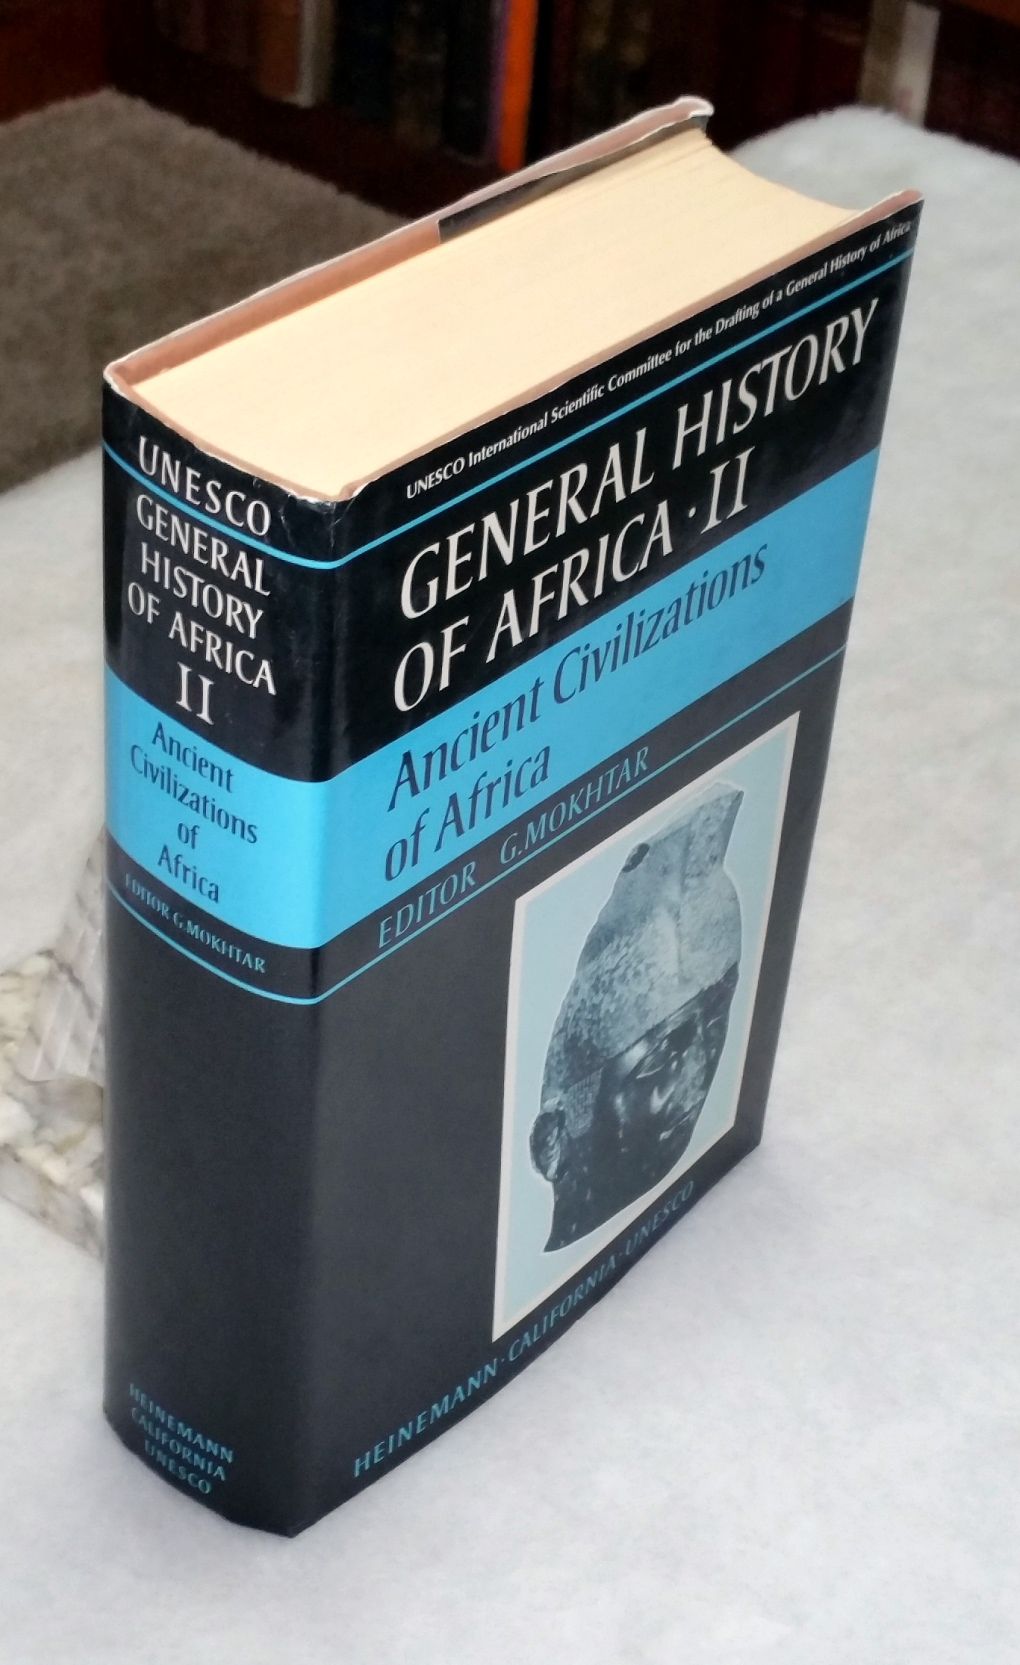 Image for General History of Africa, II: Ancient Civilizations of Africa (Volume II ONLY of the Eight Volume set)